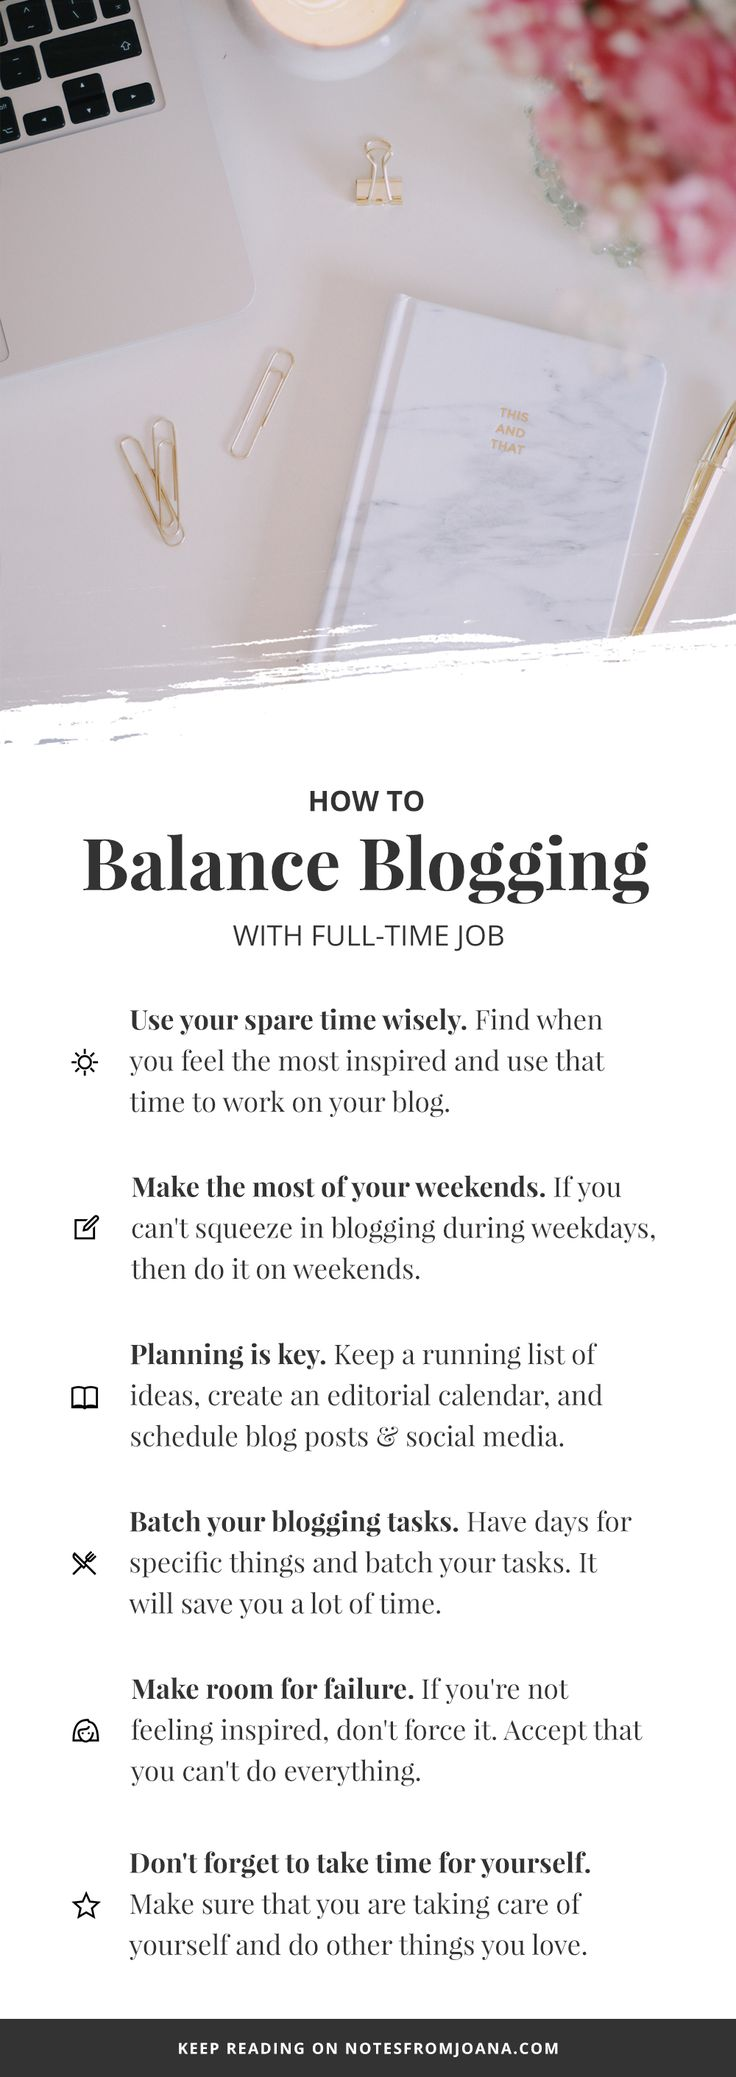 How To Balance Blogging With A Full-Time Job // A few tips on how to blog while working 9-5. Click here to read my six tips! // Notes from Joana